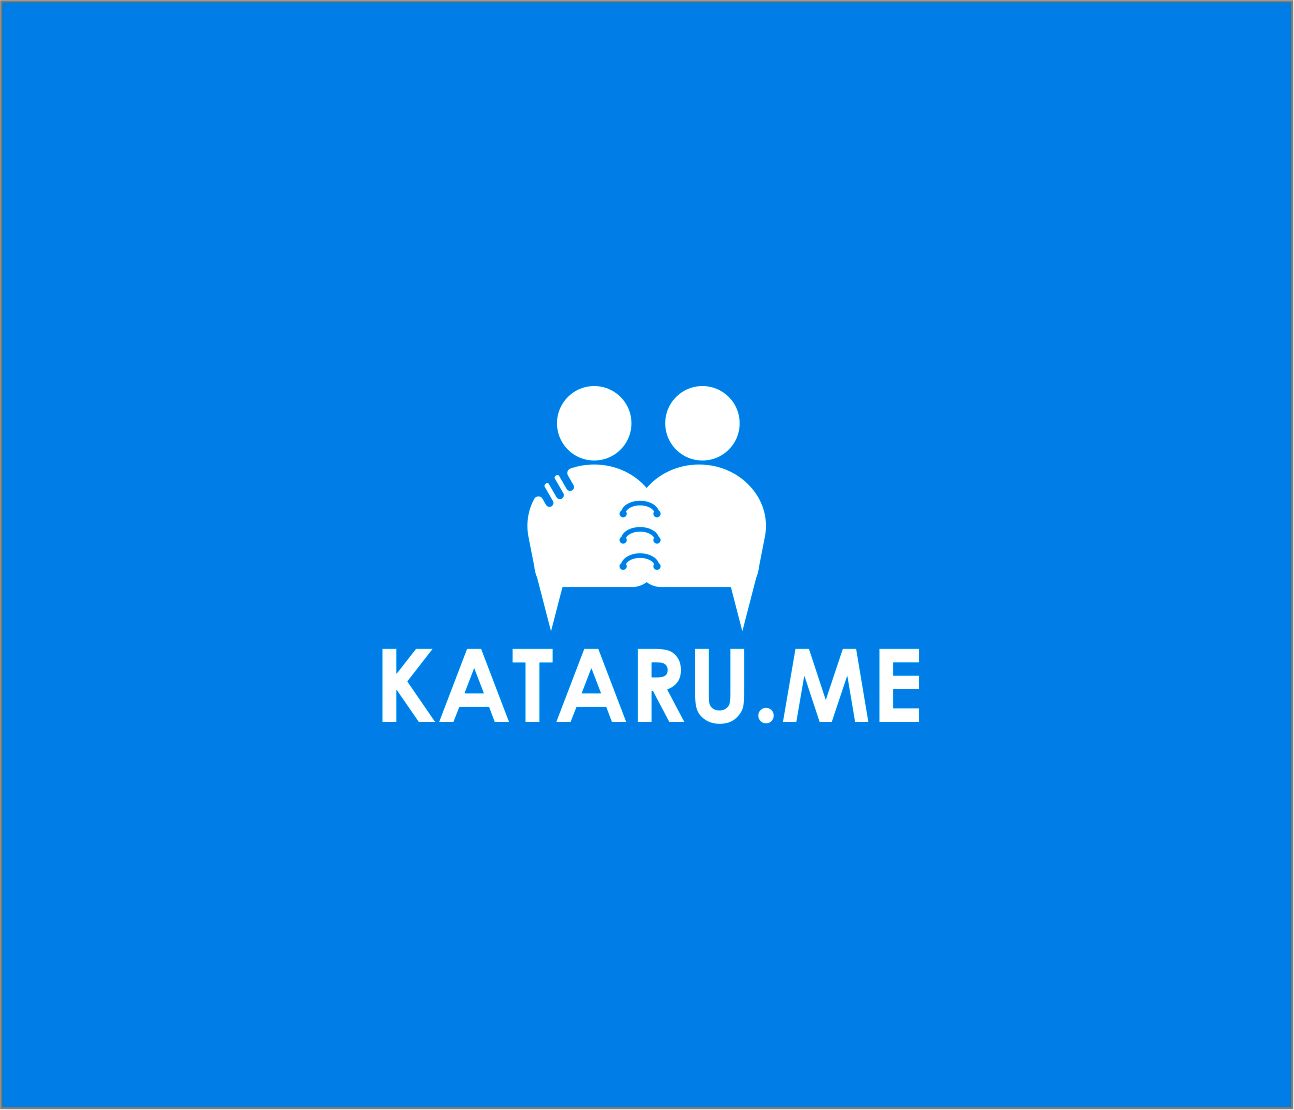 Logo Design by Armada Jamaluddin - Entry No. 95 in the Logo Design Contest Inspiring Logo Design for KATARU.ME.